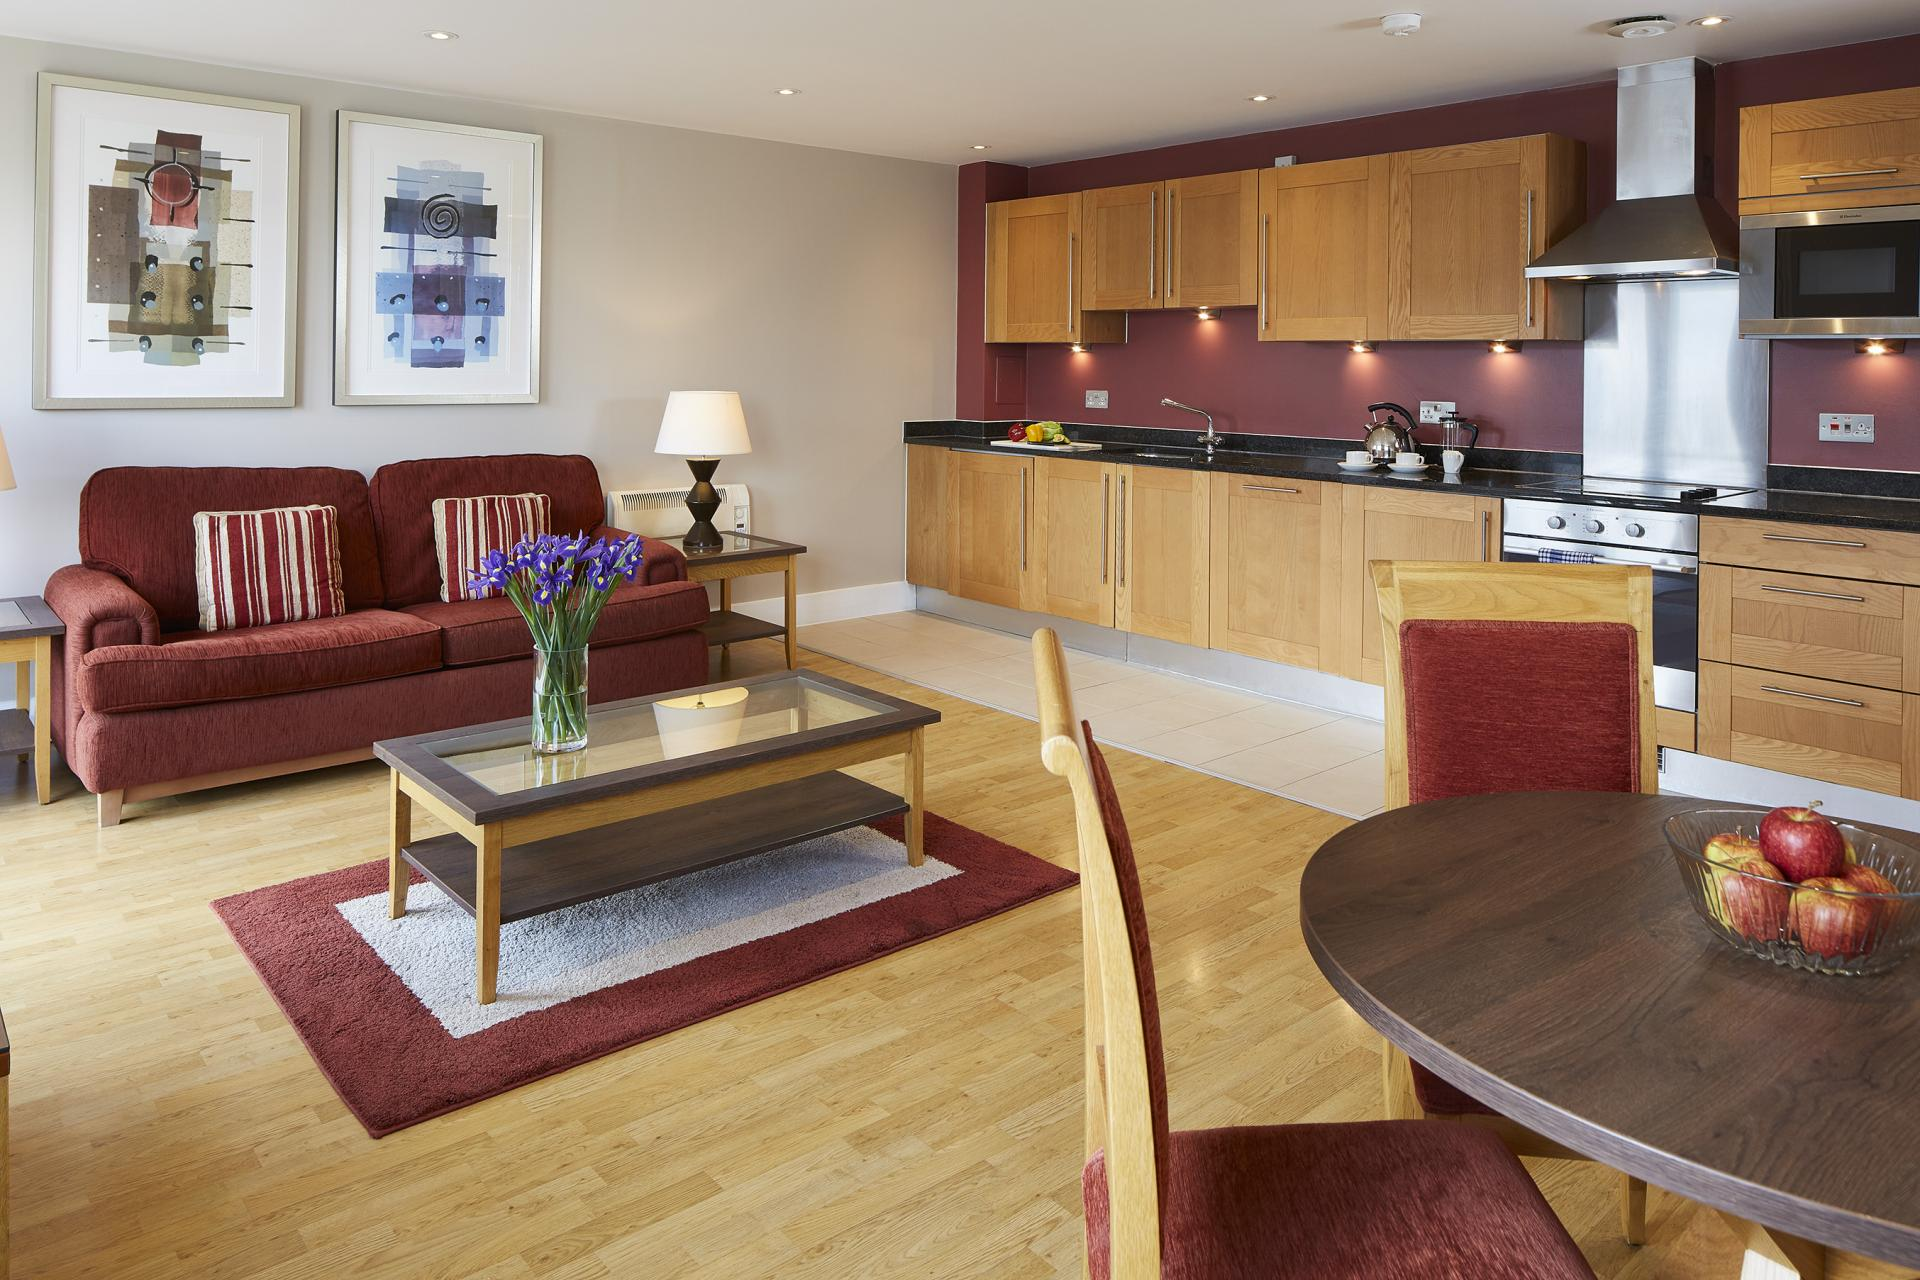 Kitchen diner at Limehouse Apartments, Limehouse, London